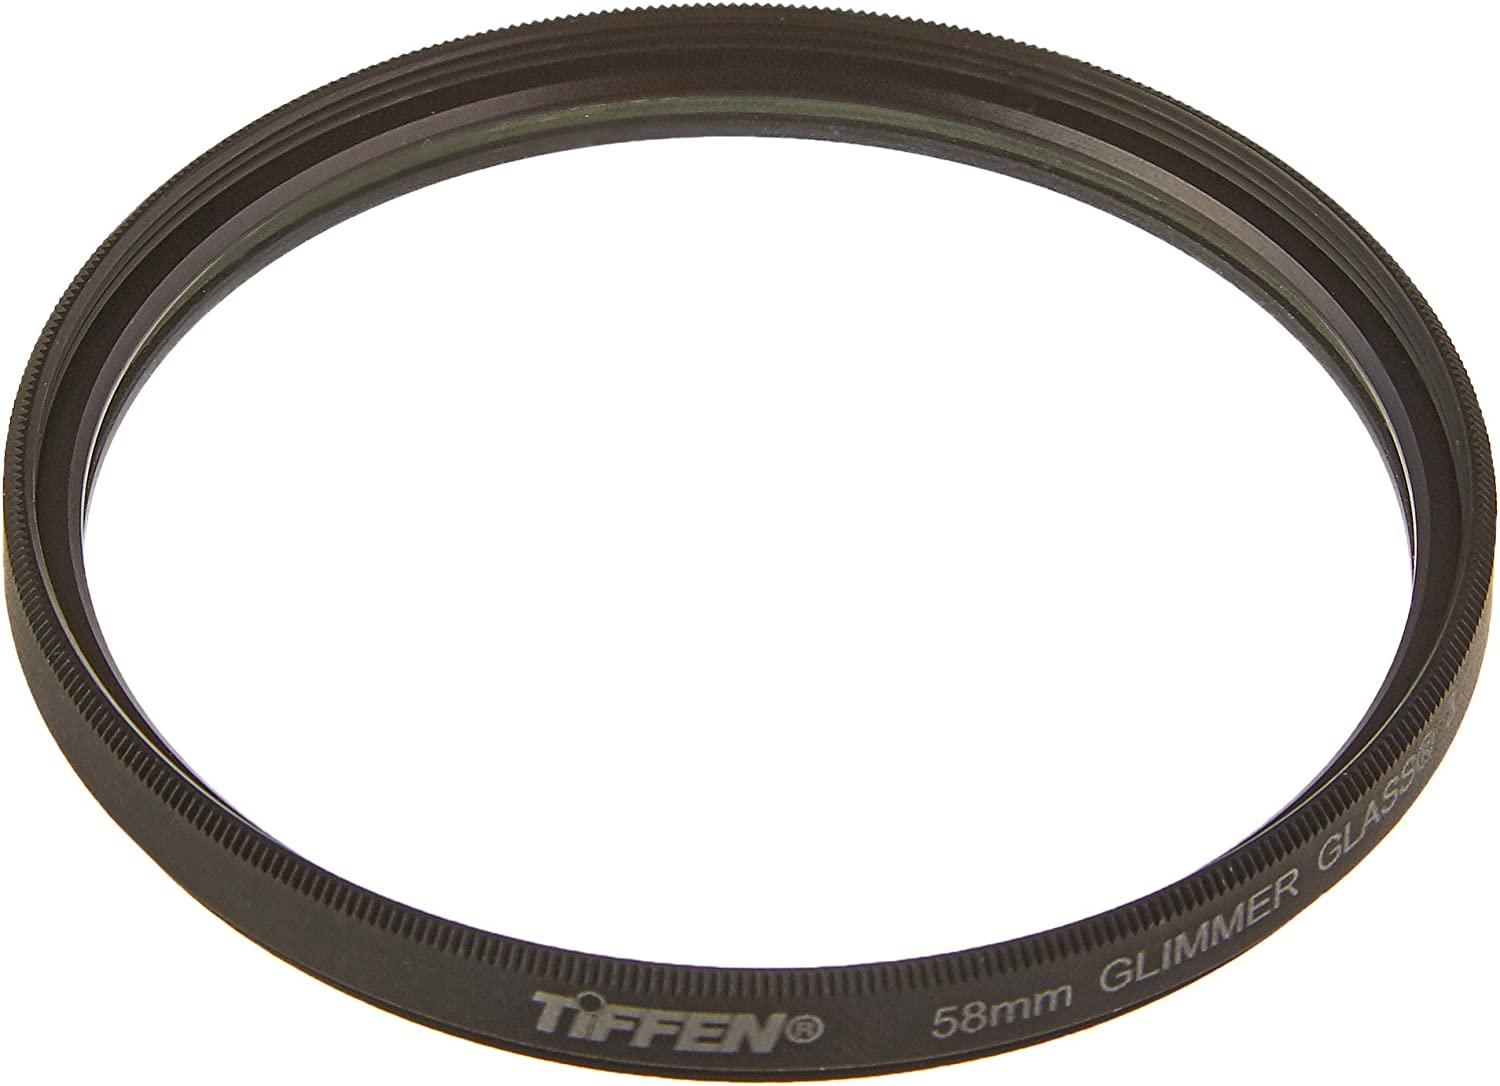 Tiffen 58GG3 58mm Glimmer Glass 3 Filter